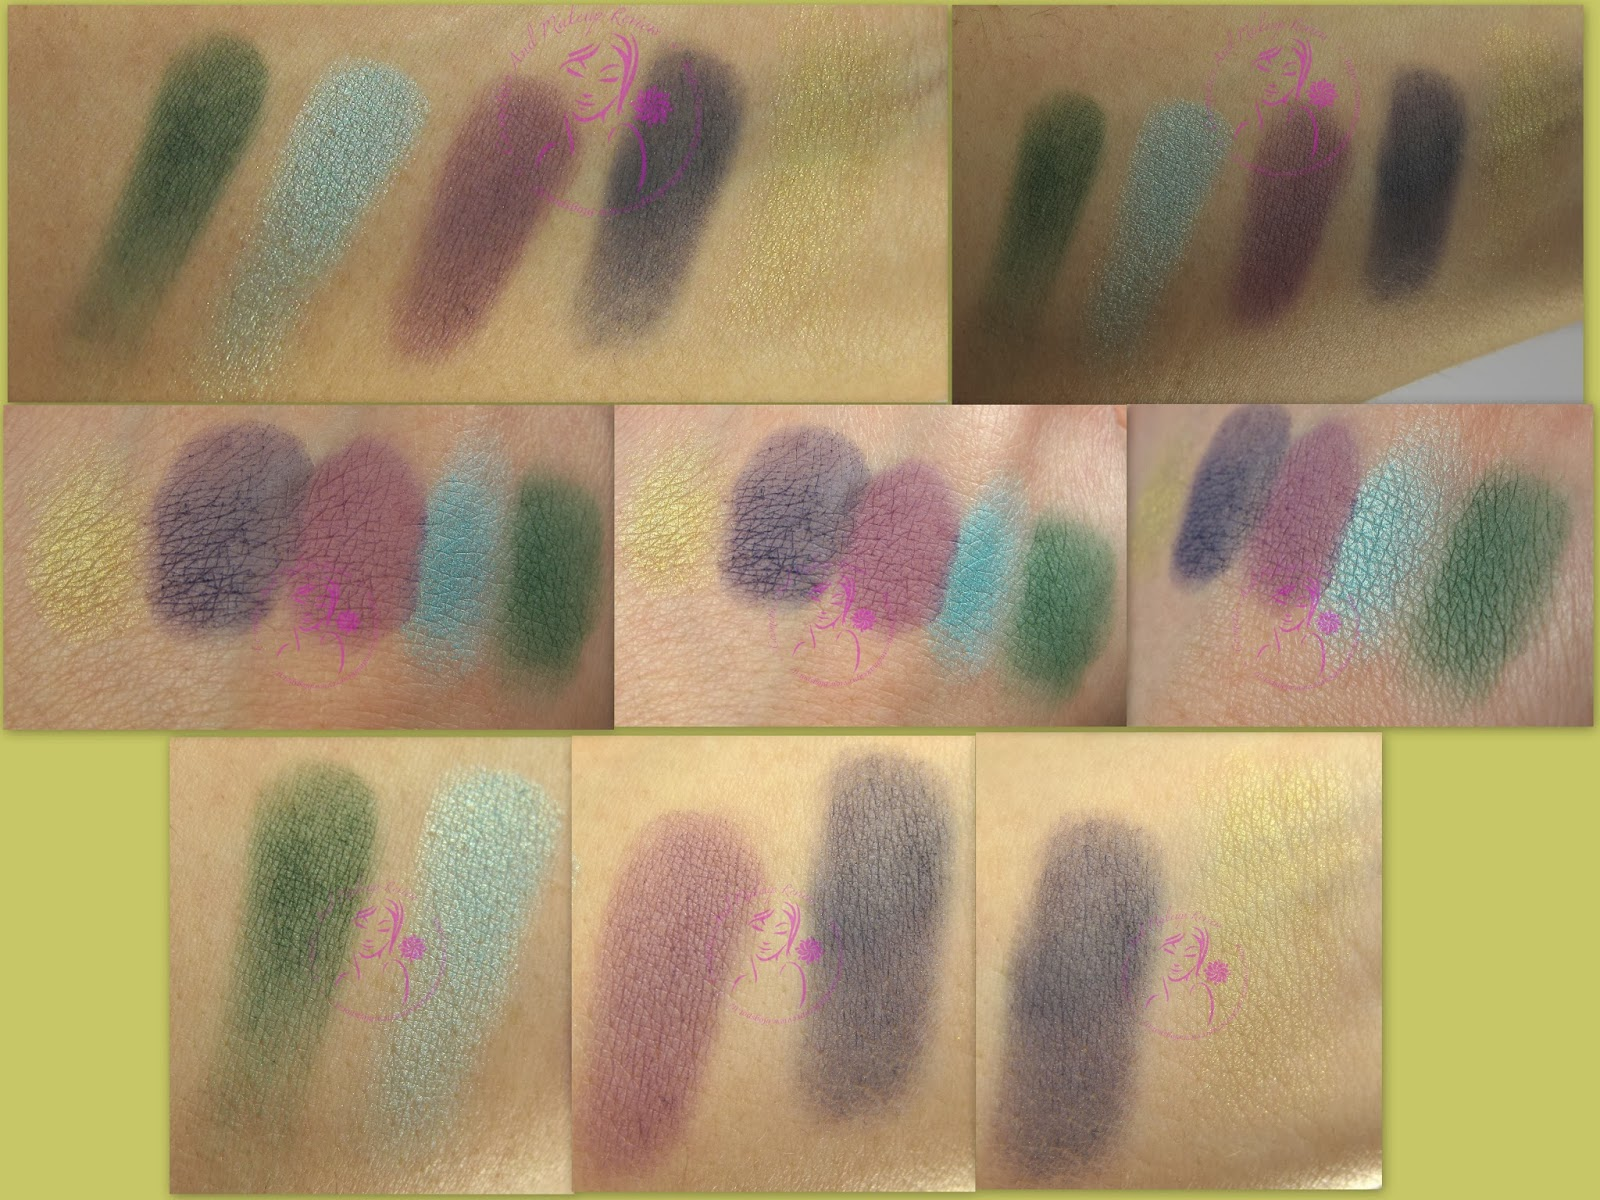 Labo Make-up - Palette 5 Ombretti n° 01 - Peacock/Pavone - swatches